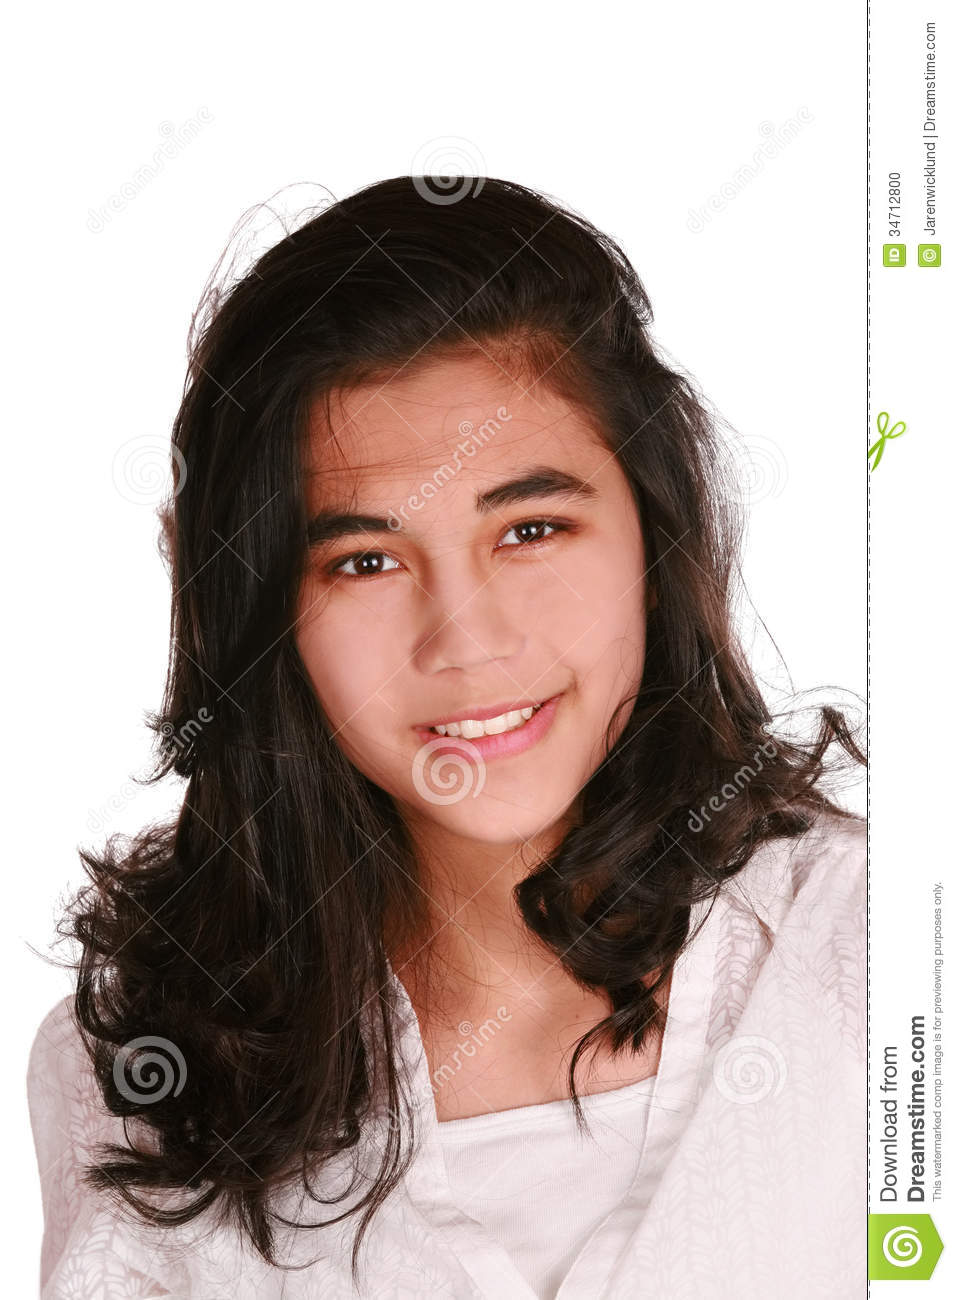 Beautiful Biracial Teen Girl Smiling, Isolated Stock Photo - Image ...